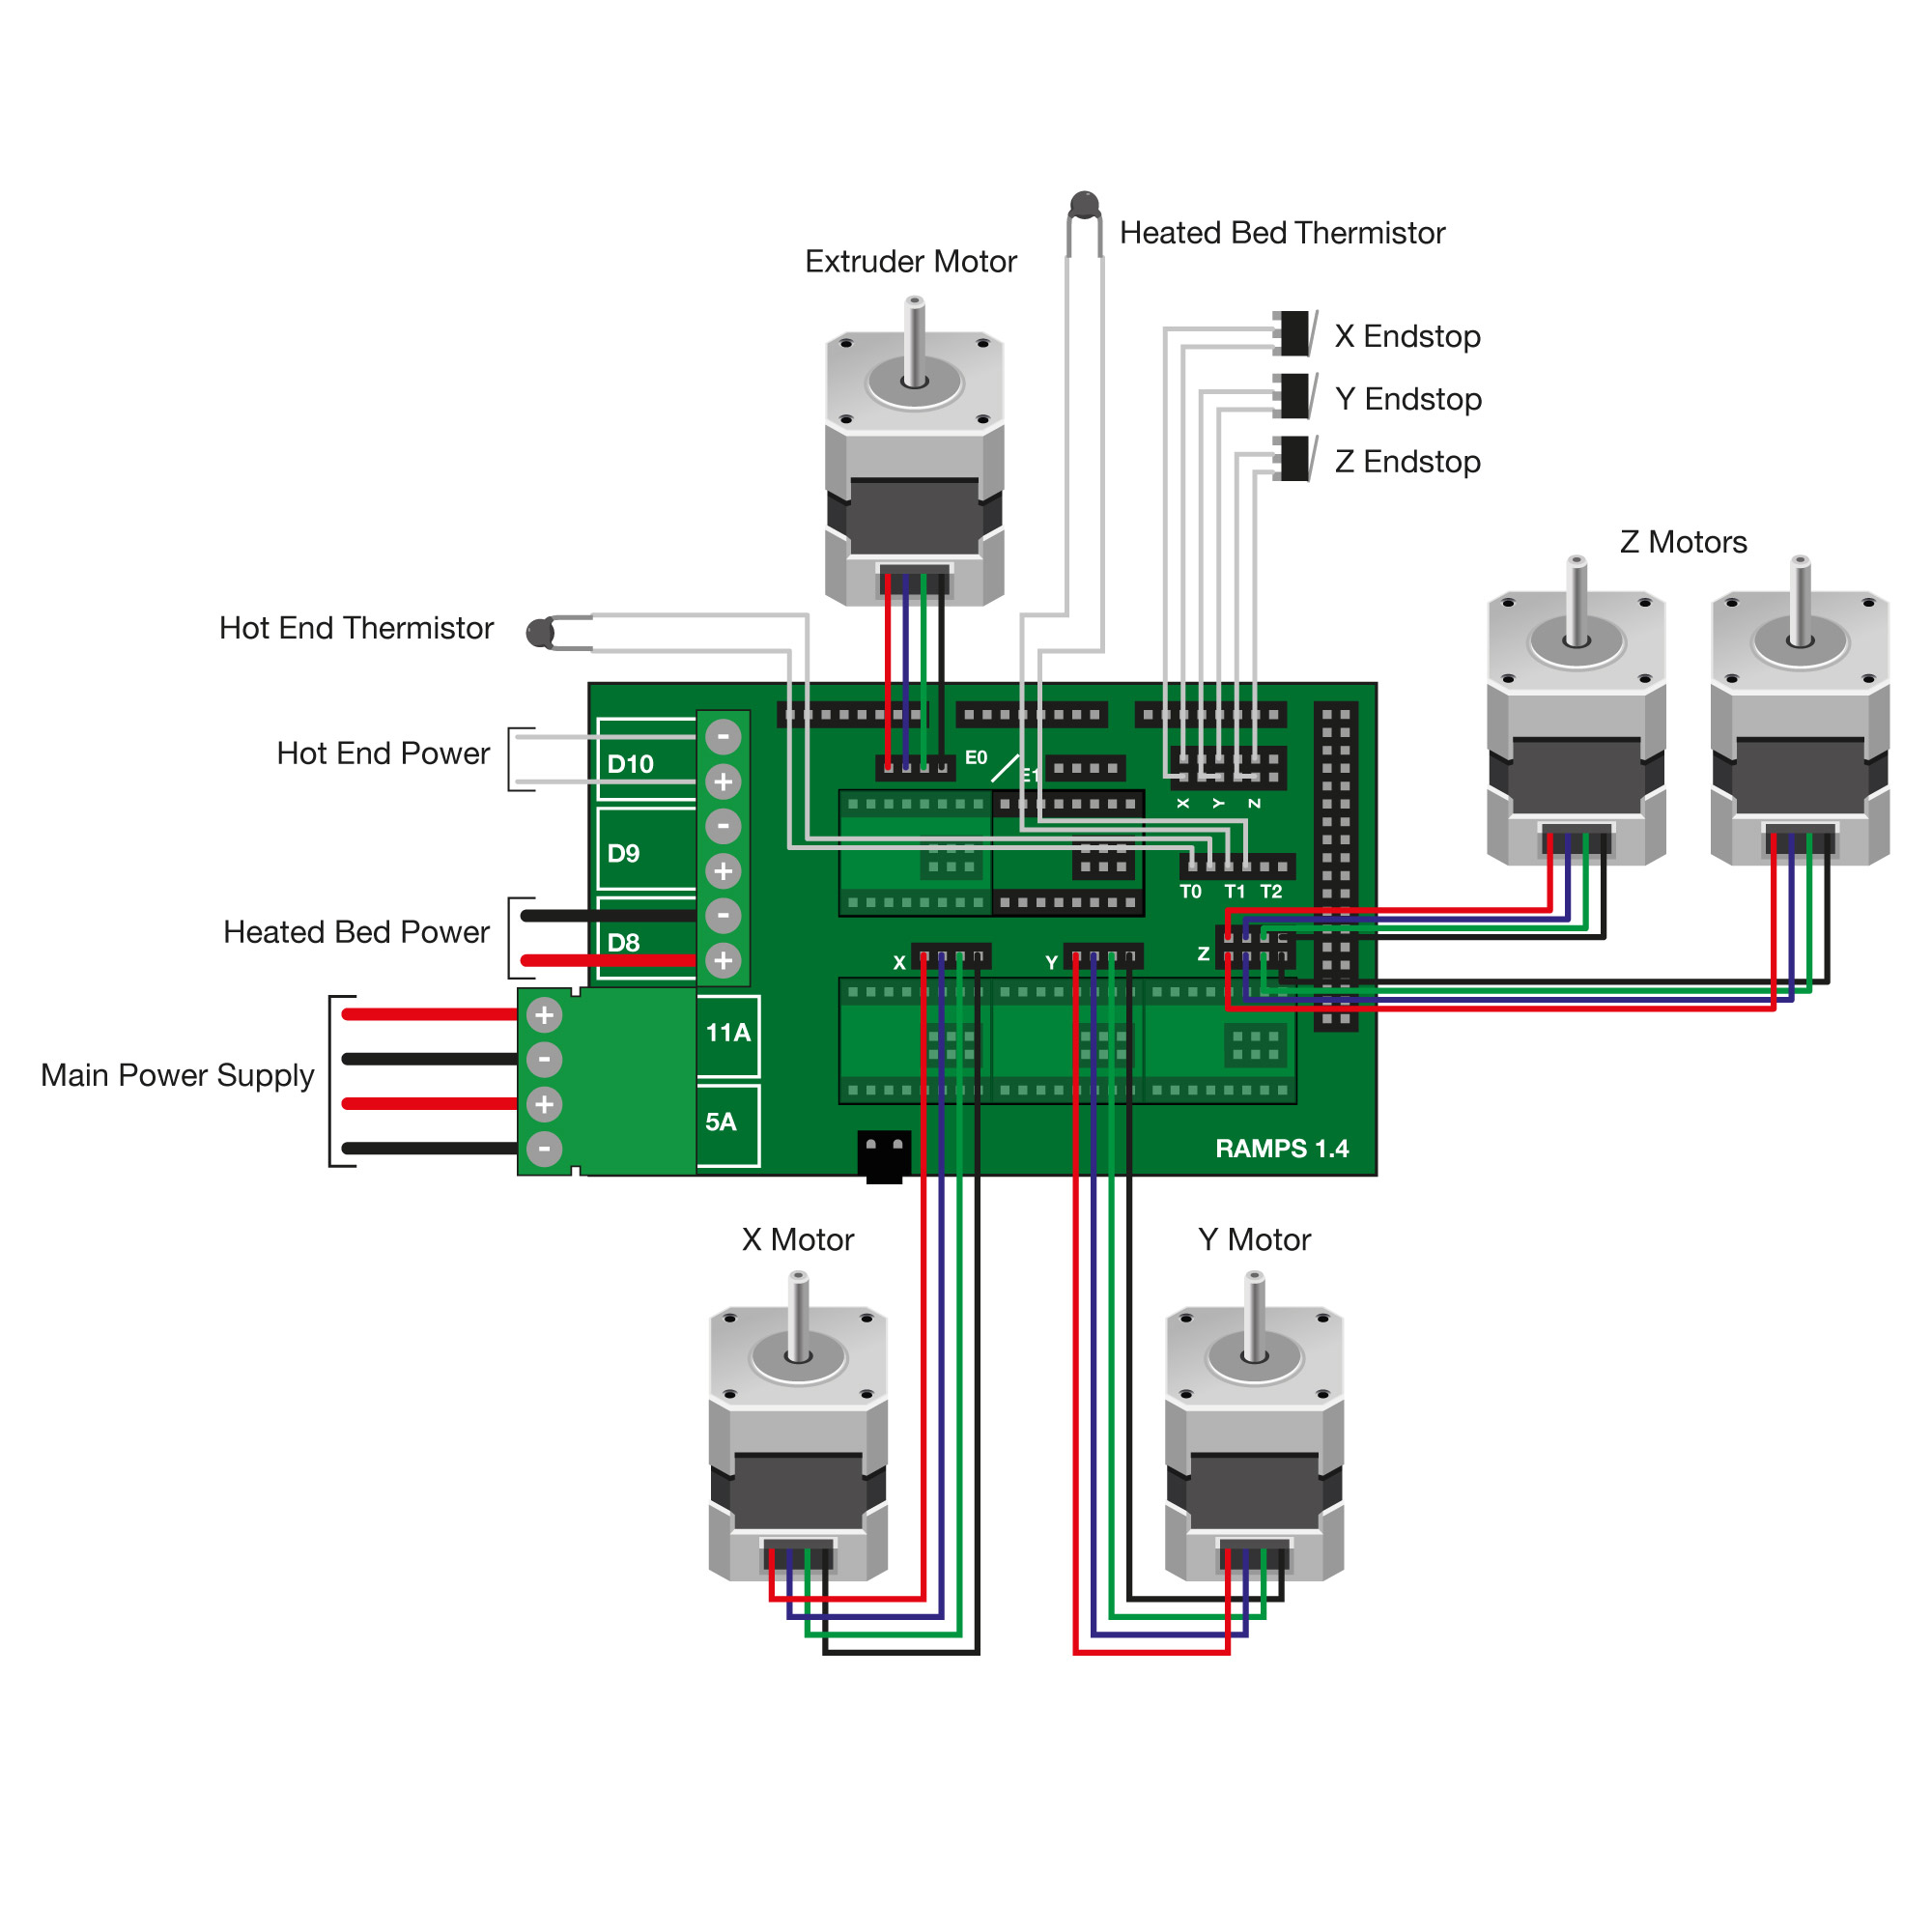 15470352354_3baf2e7bba_o reprap wiring diagram nema 17 wiring diagram \u2022 wiring diagrams j  at edmiracle.co